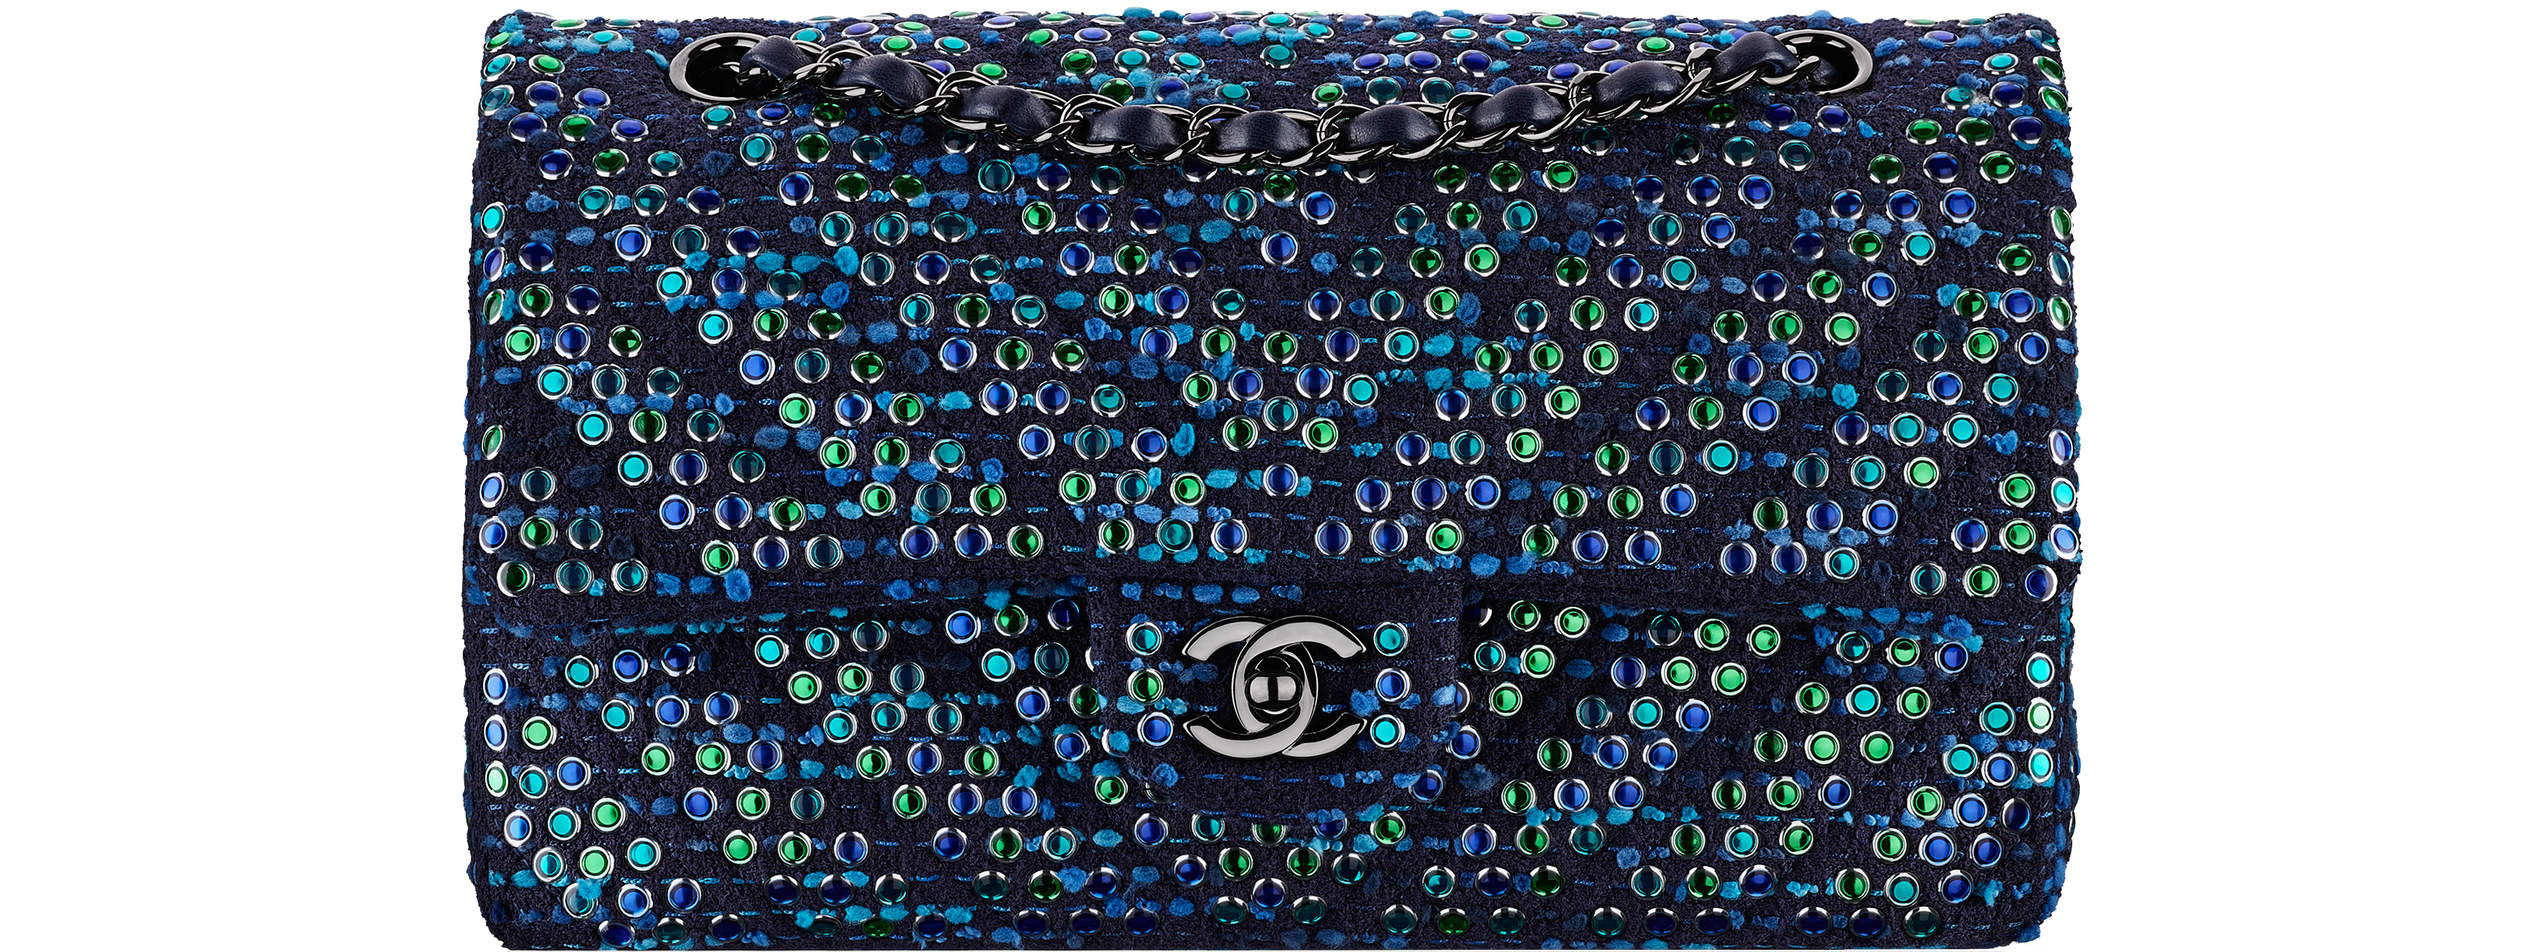 Chanel spring summer 2017 classic flap bag blue tweed studs